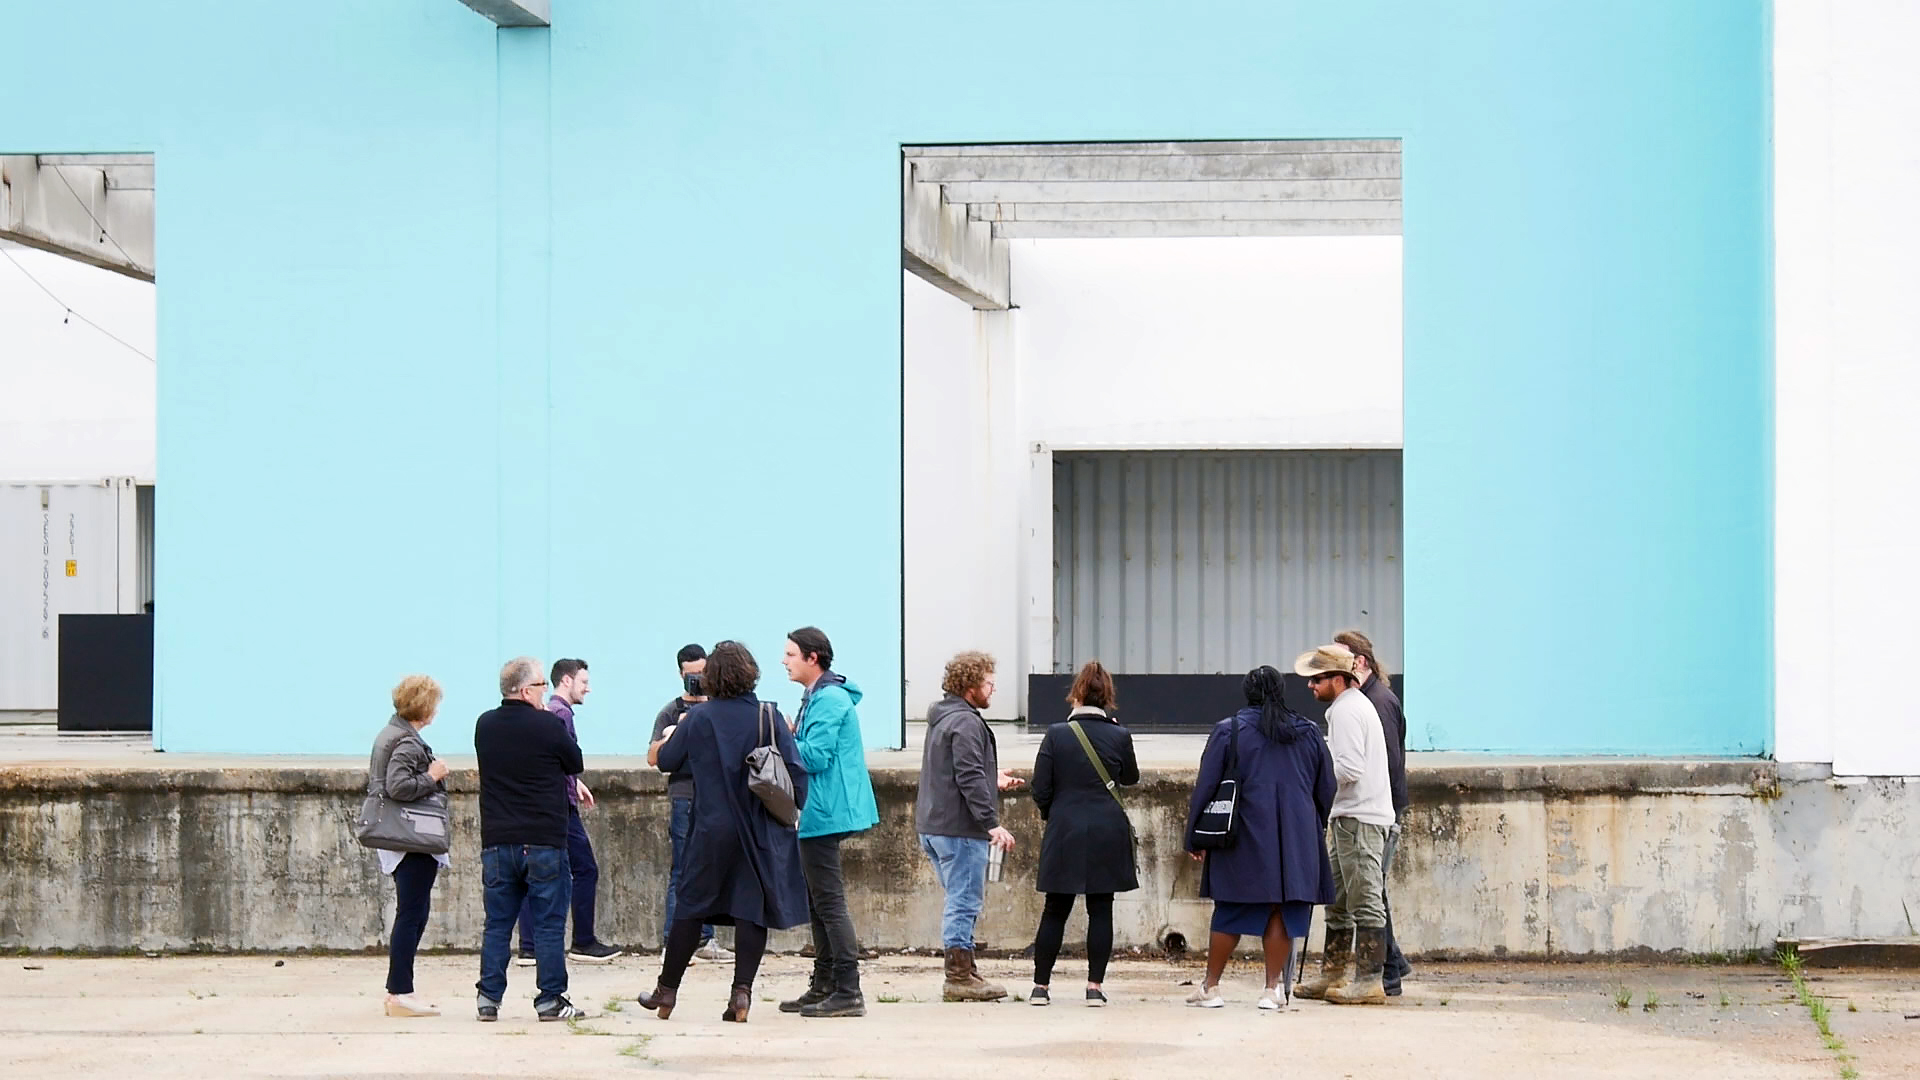 Photo of people standing in front of a light blue building wall